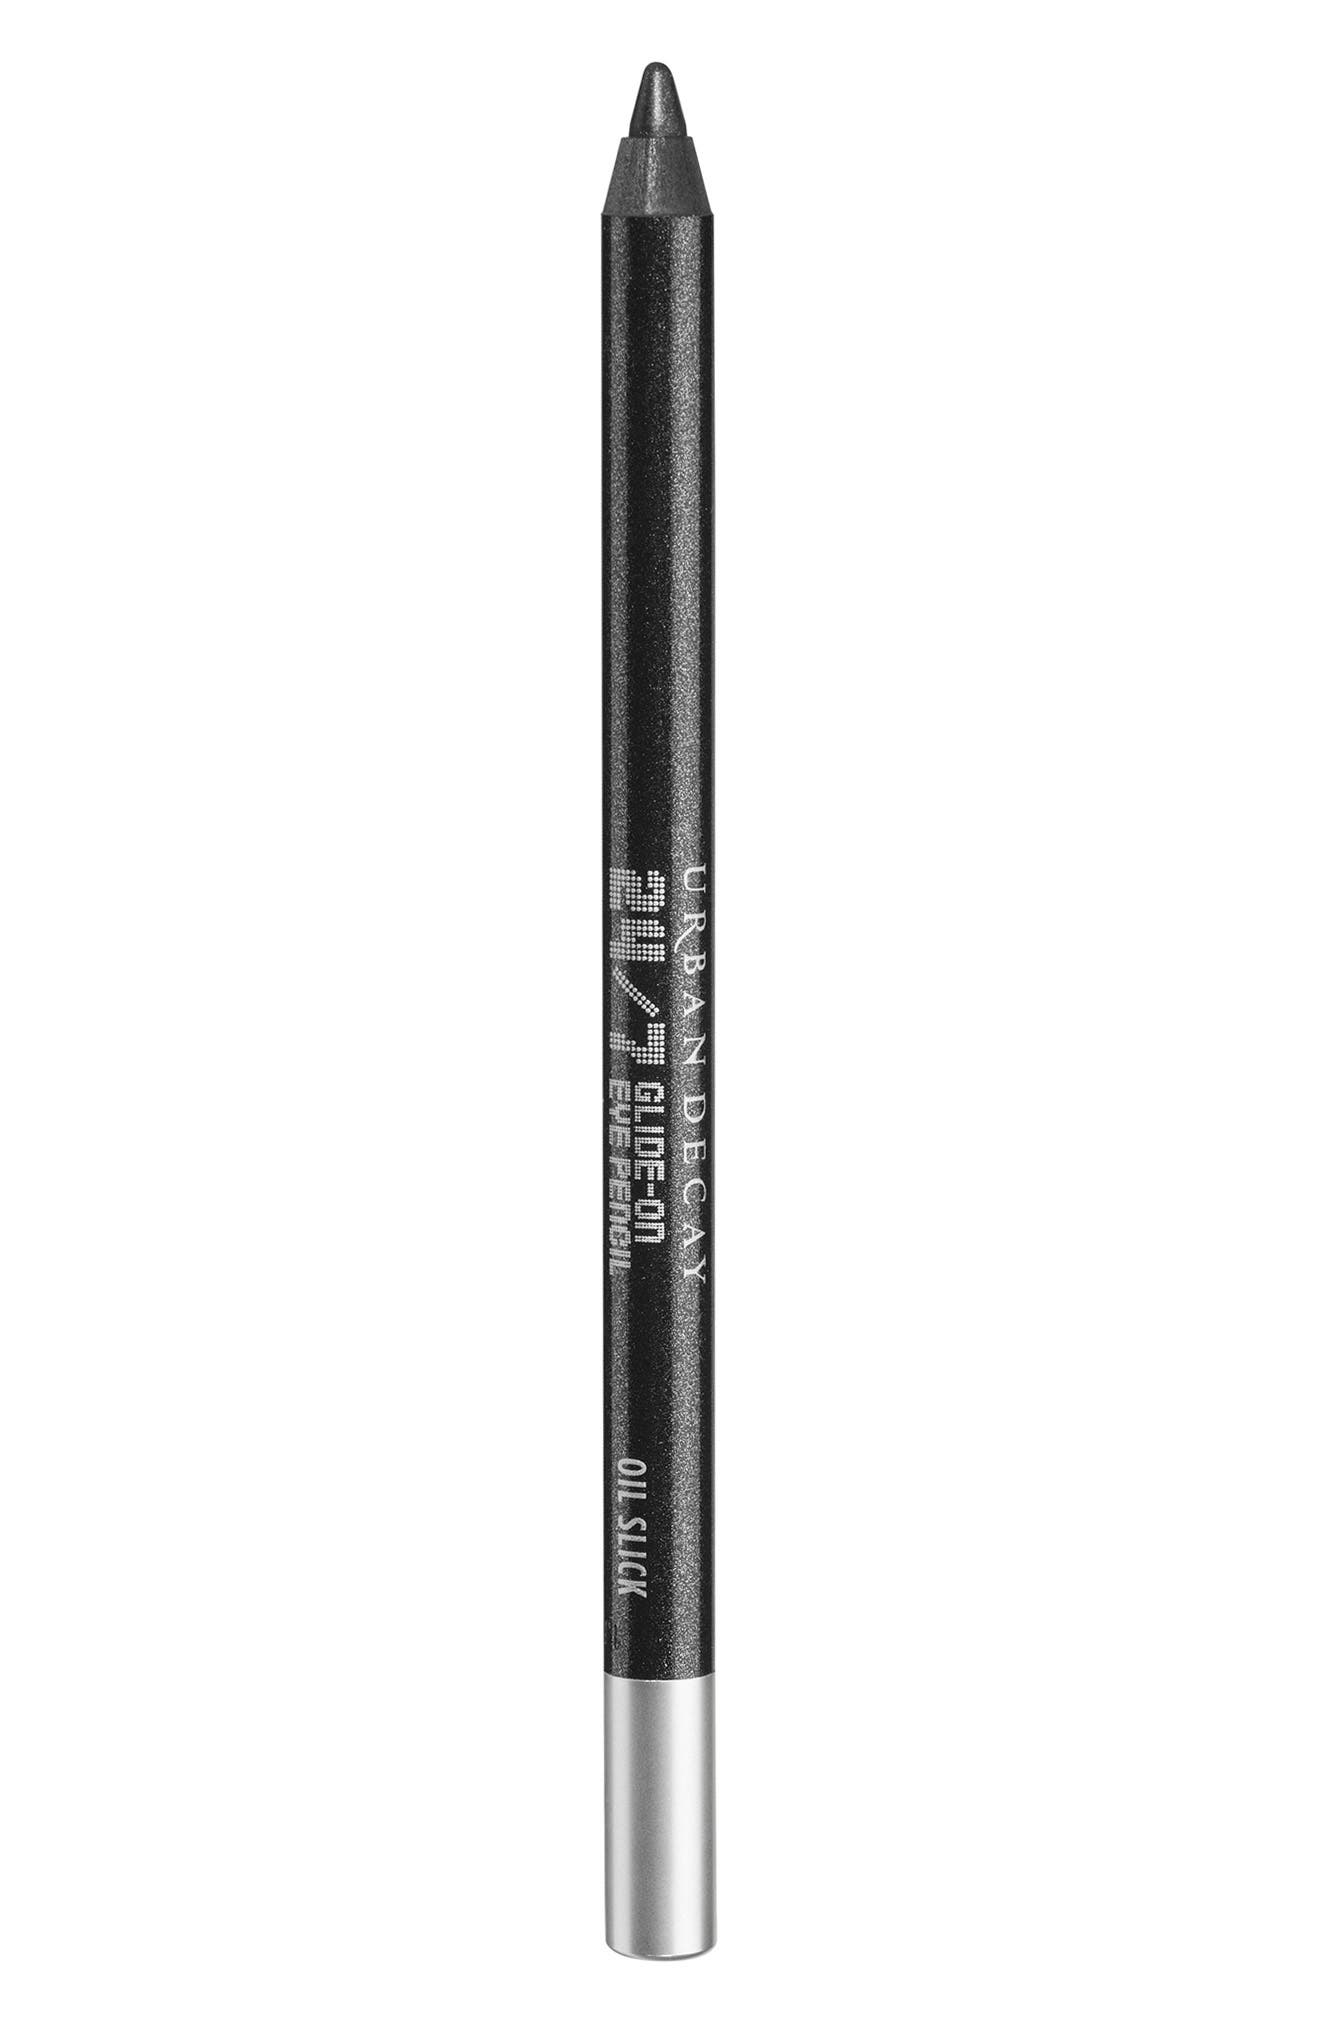 24/7 Glide-On Eye Pencil Naked Heat Collection,                             Main thumbnail 1, color,                             001